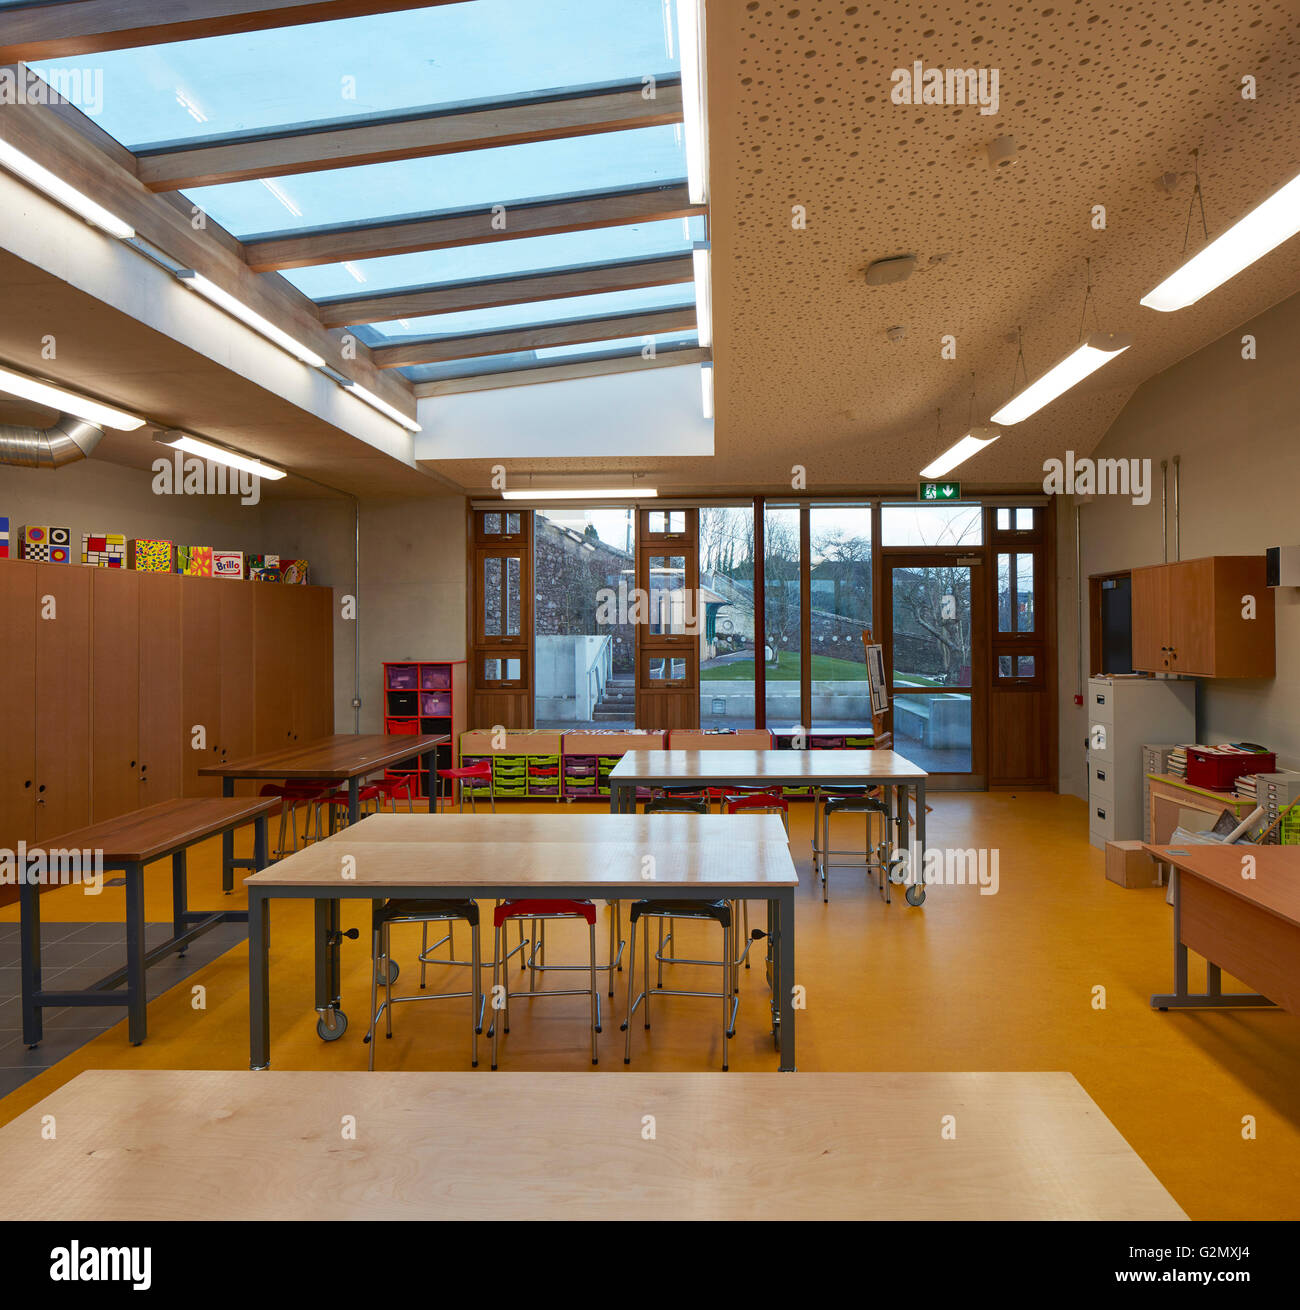 art classroom with skylight and orchard garden view st angelas college cork cork ireland architect odonnell tuomey architects 2016